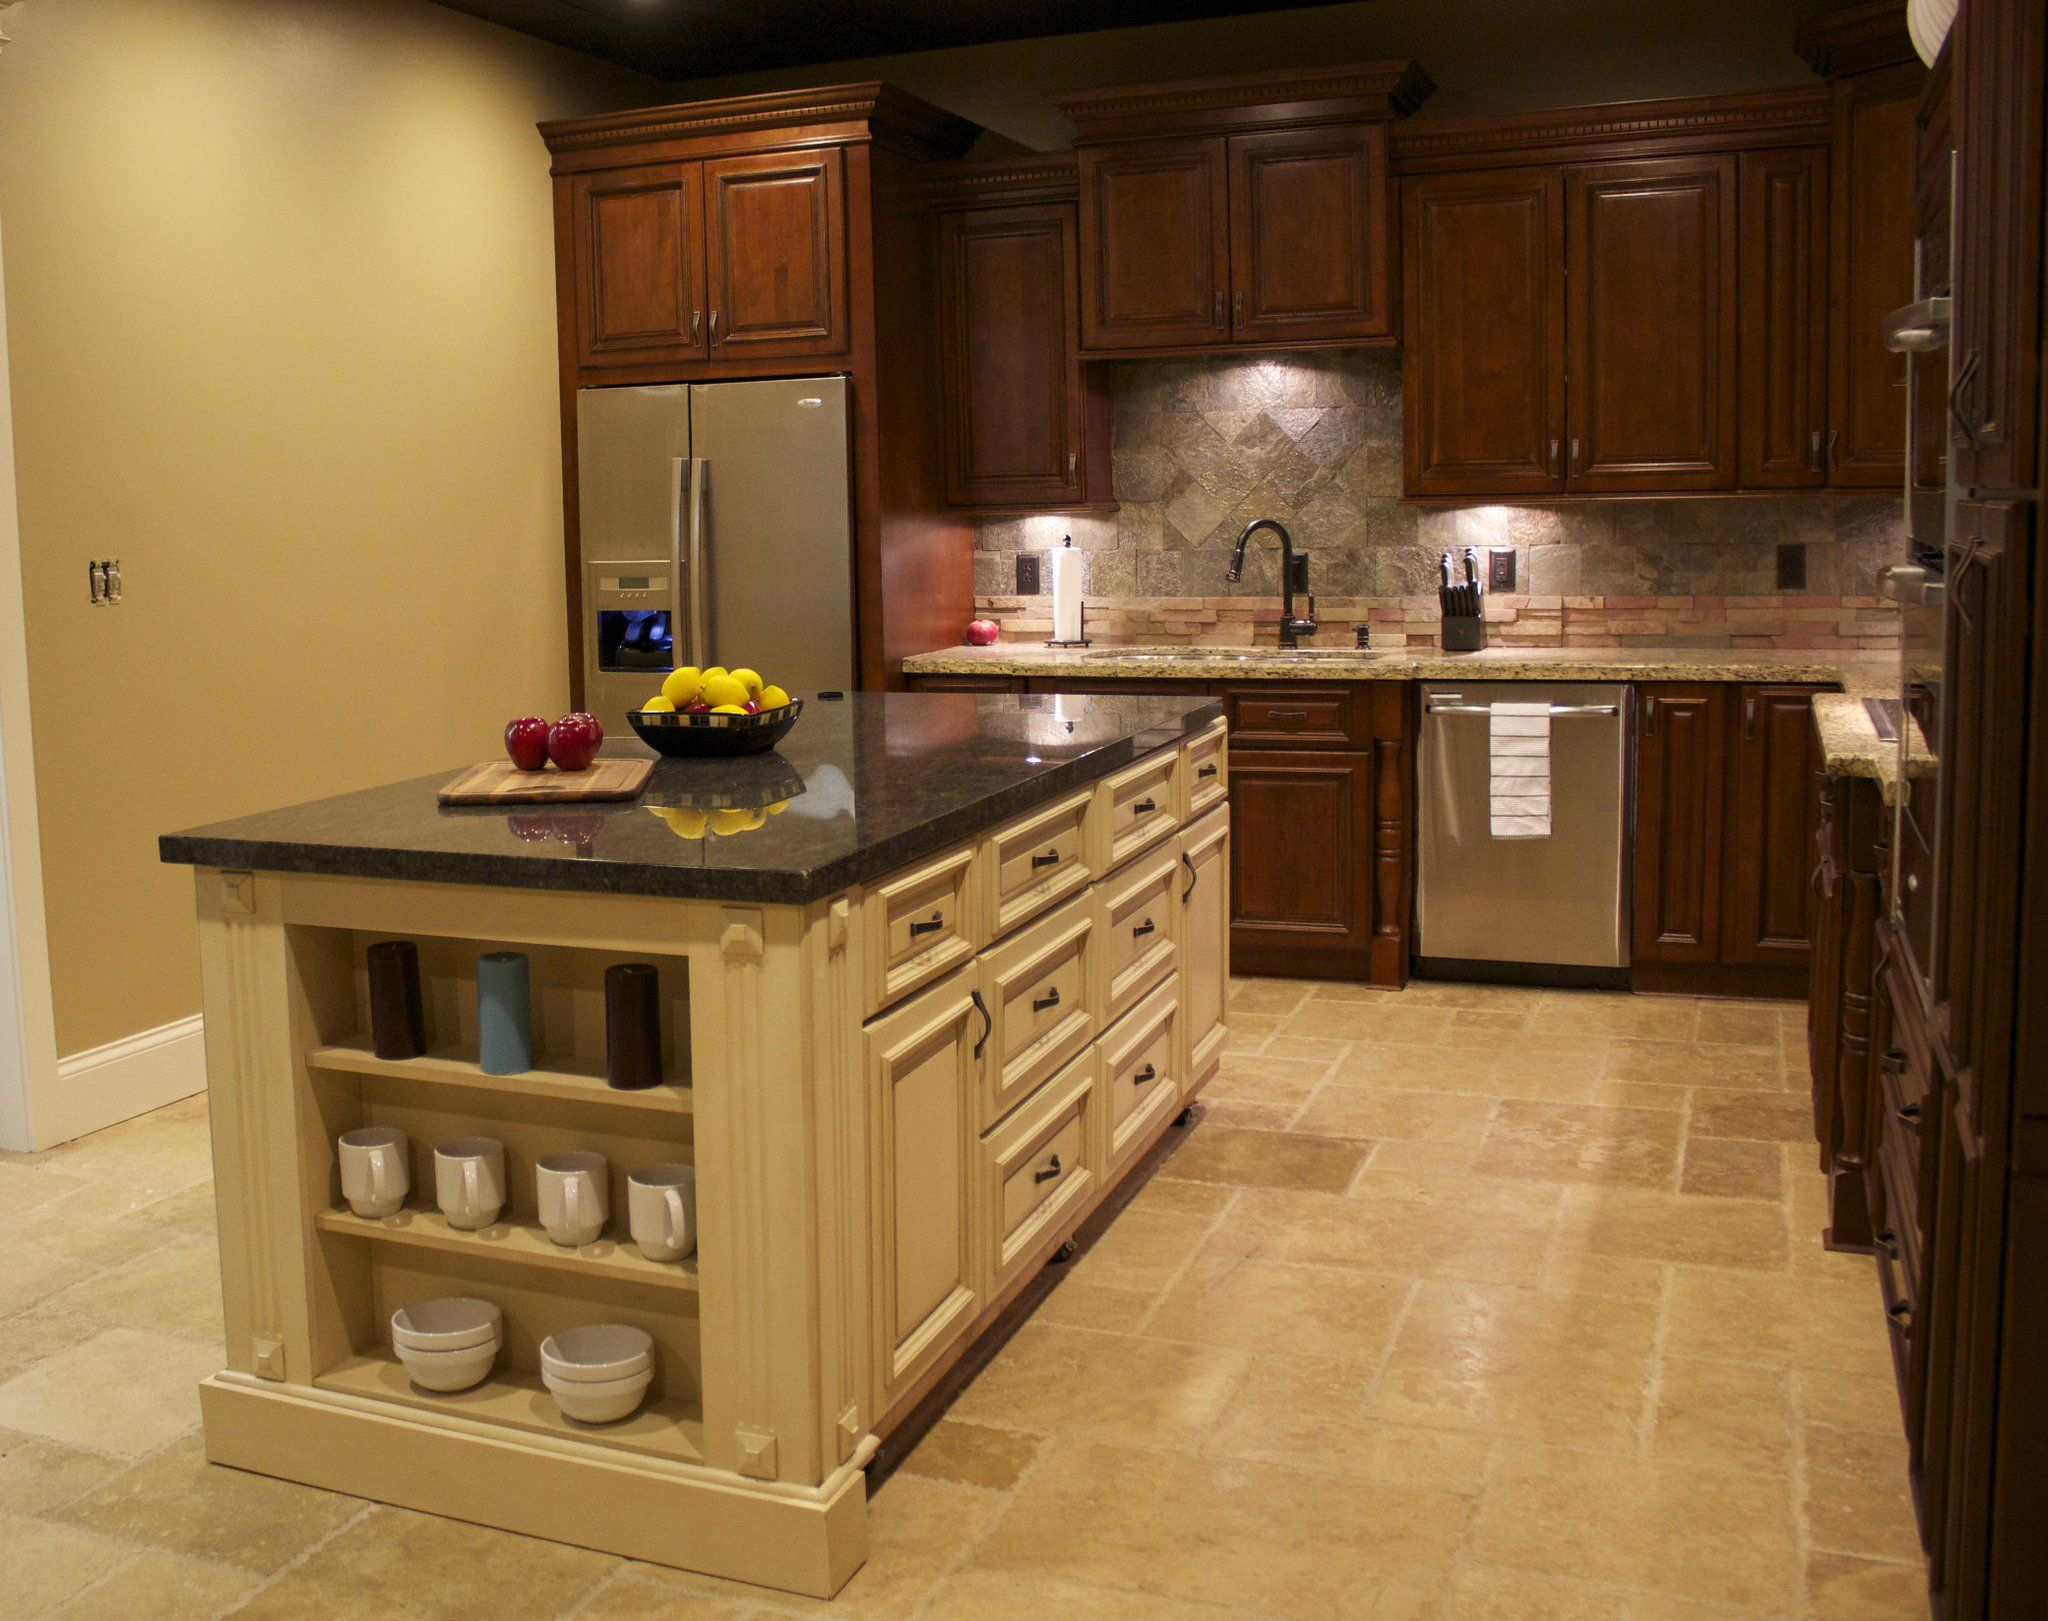 Is Mixing Kitchen Cabinet Finishes Okay Or Not: Mixing Cabinet Colors For Contrast. Love The Use Of Trims